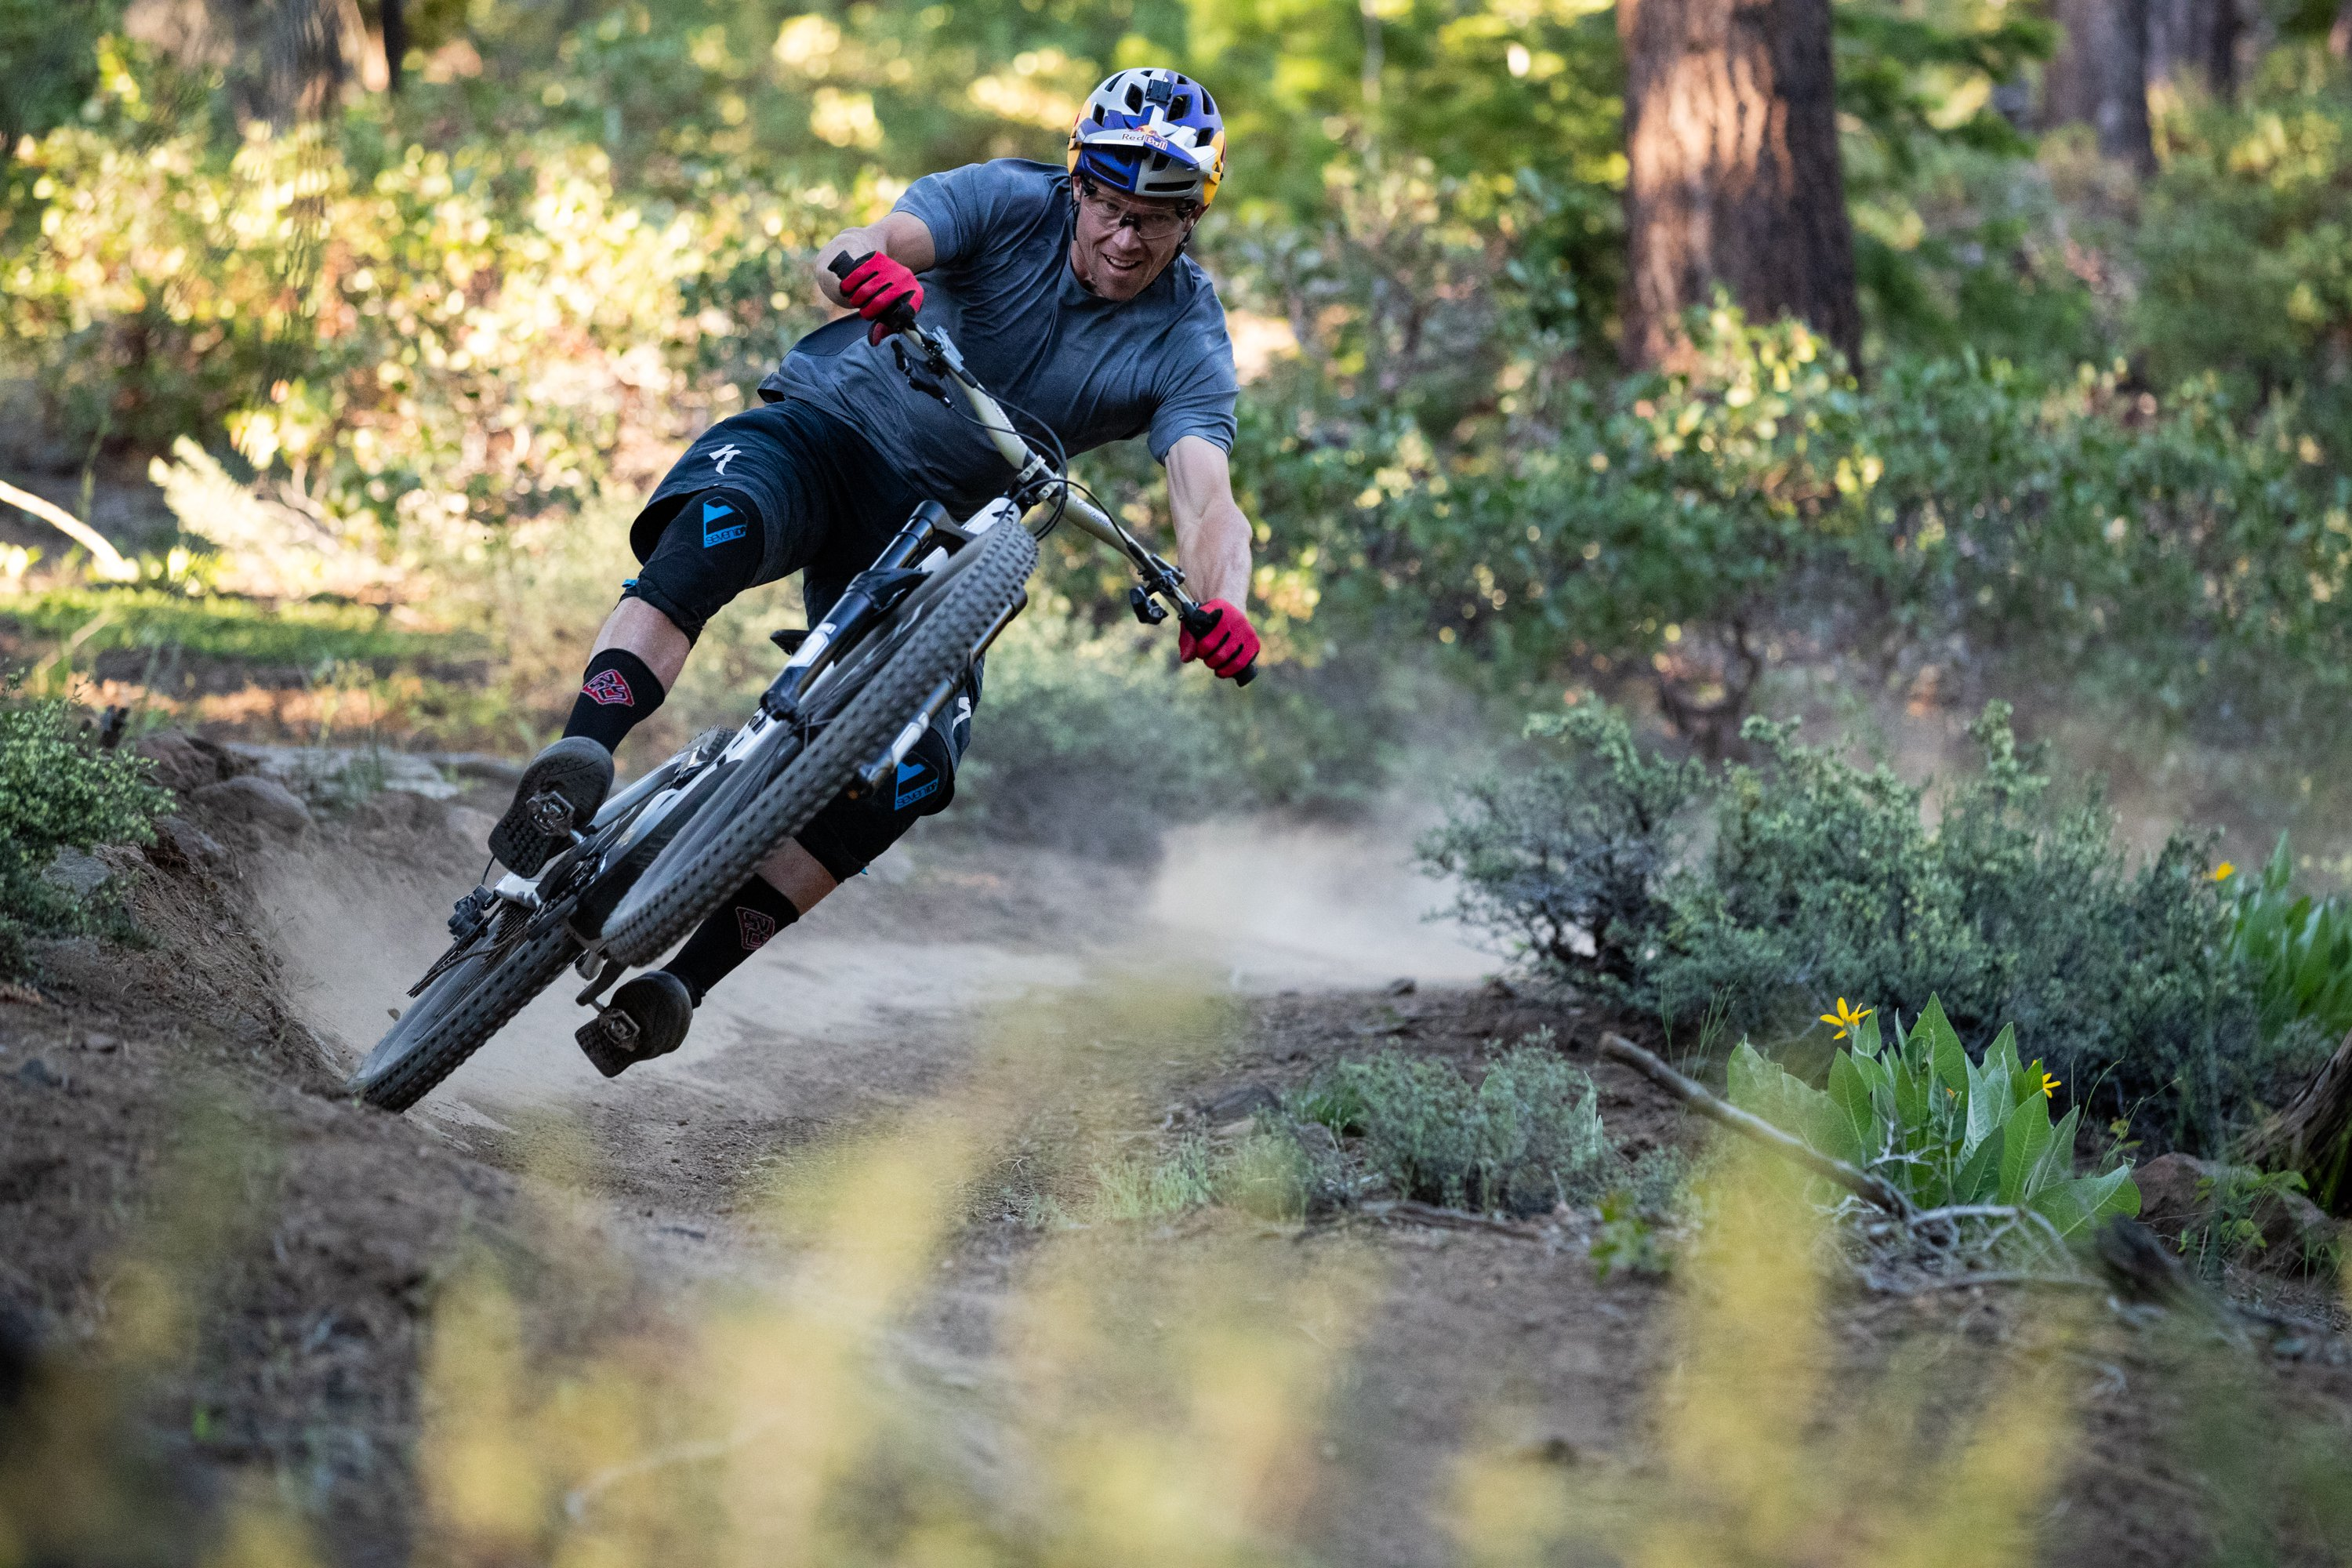 2020 Specialized Enduro Curtis Keene1.jpg